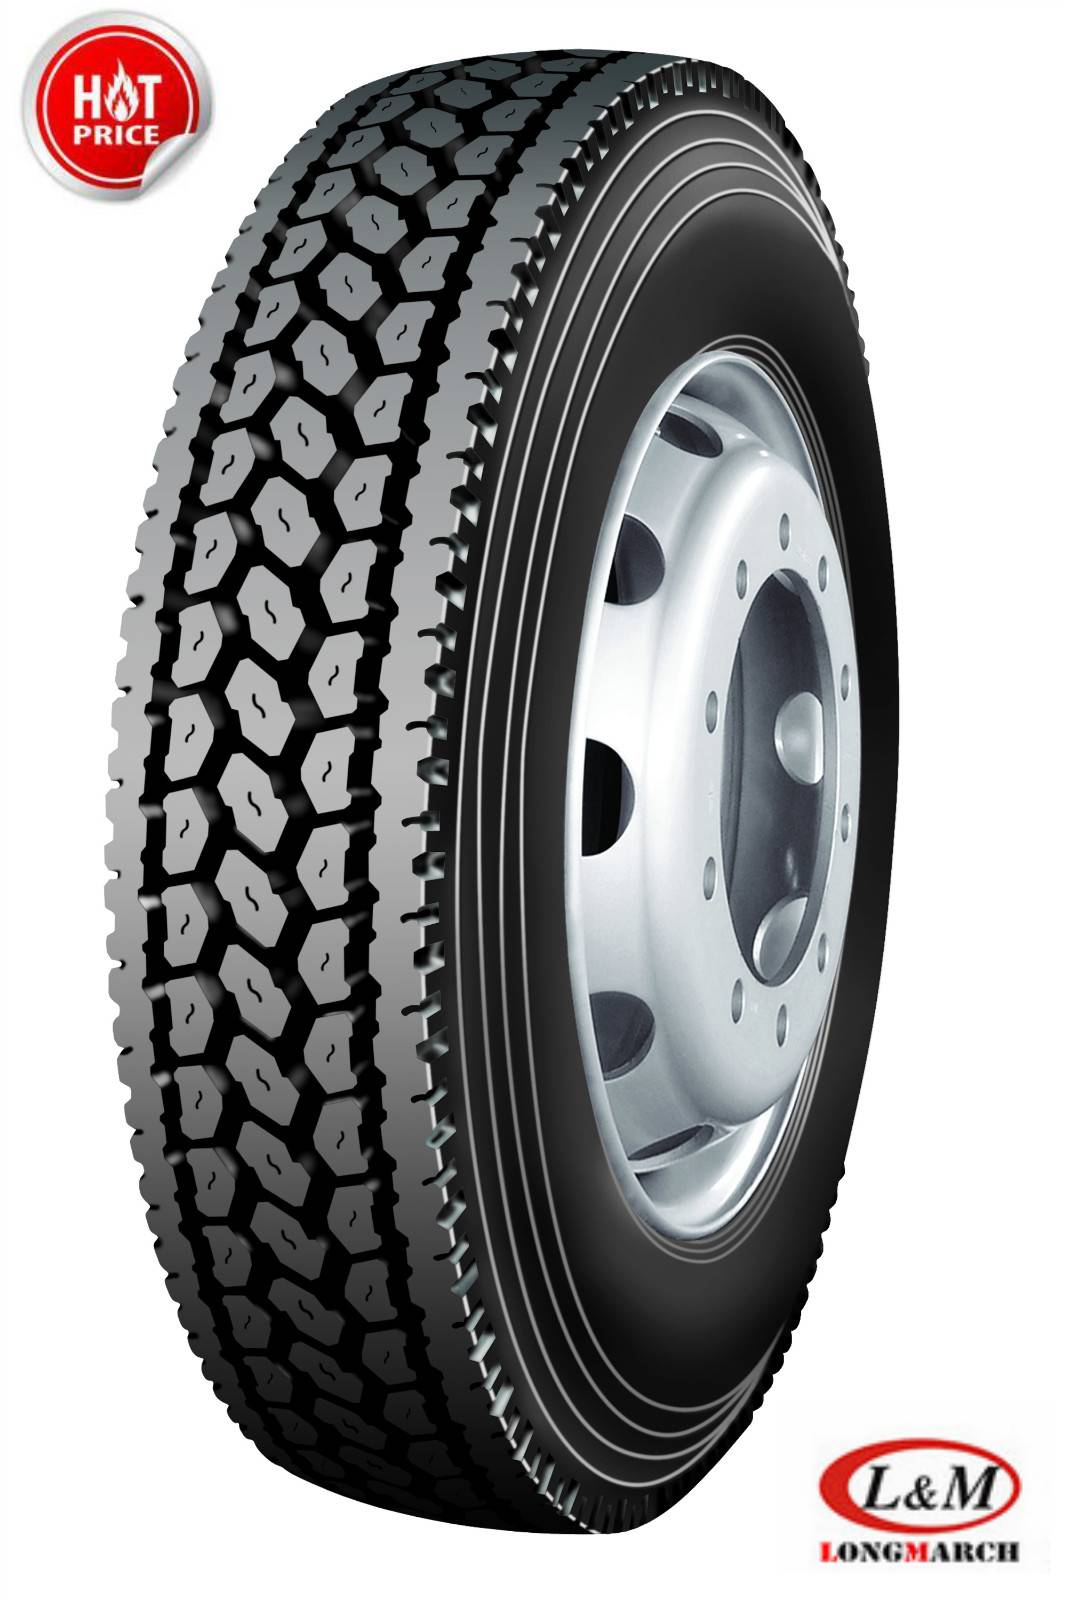 China Truck Tyre Longmarch Truck Tires with Drive Position (LM516)